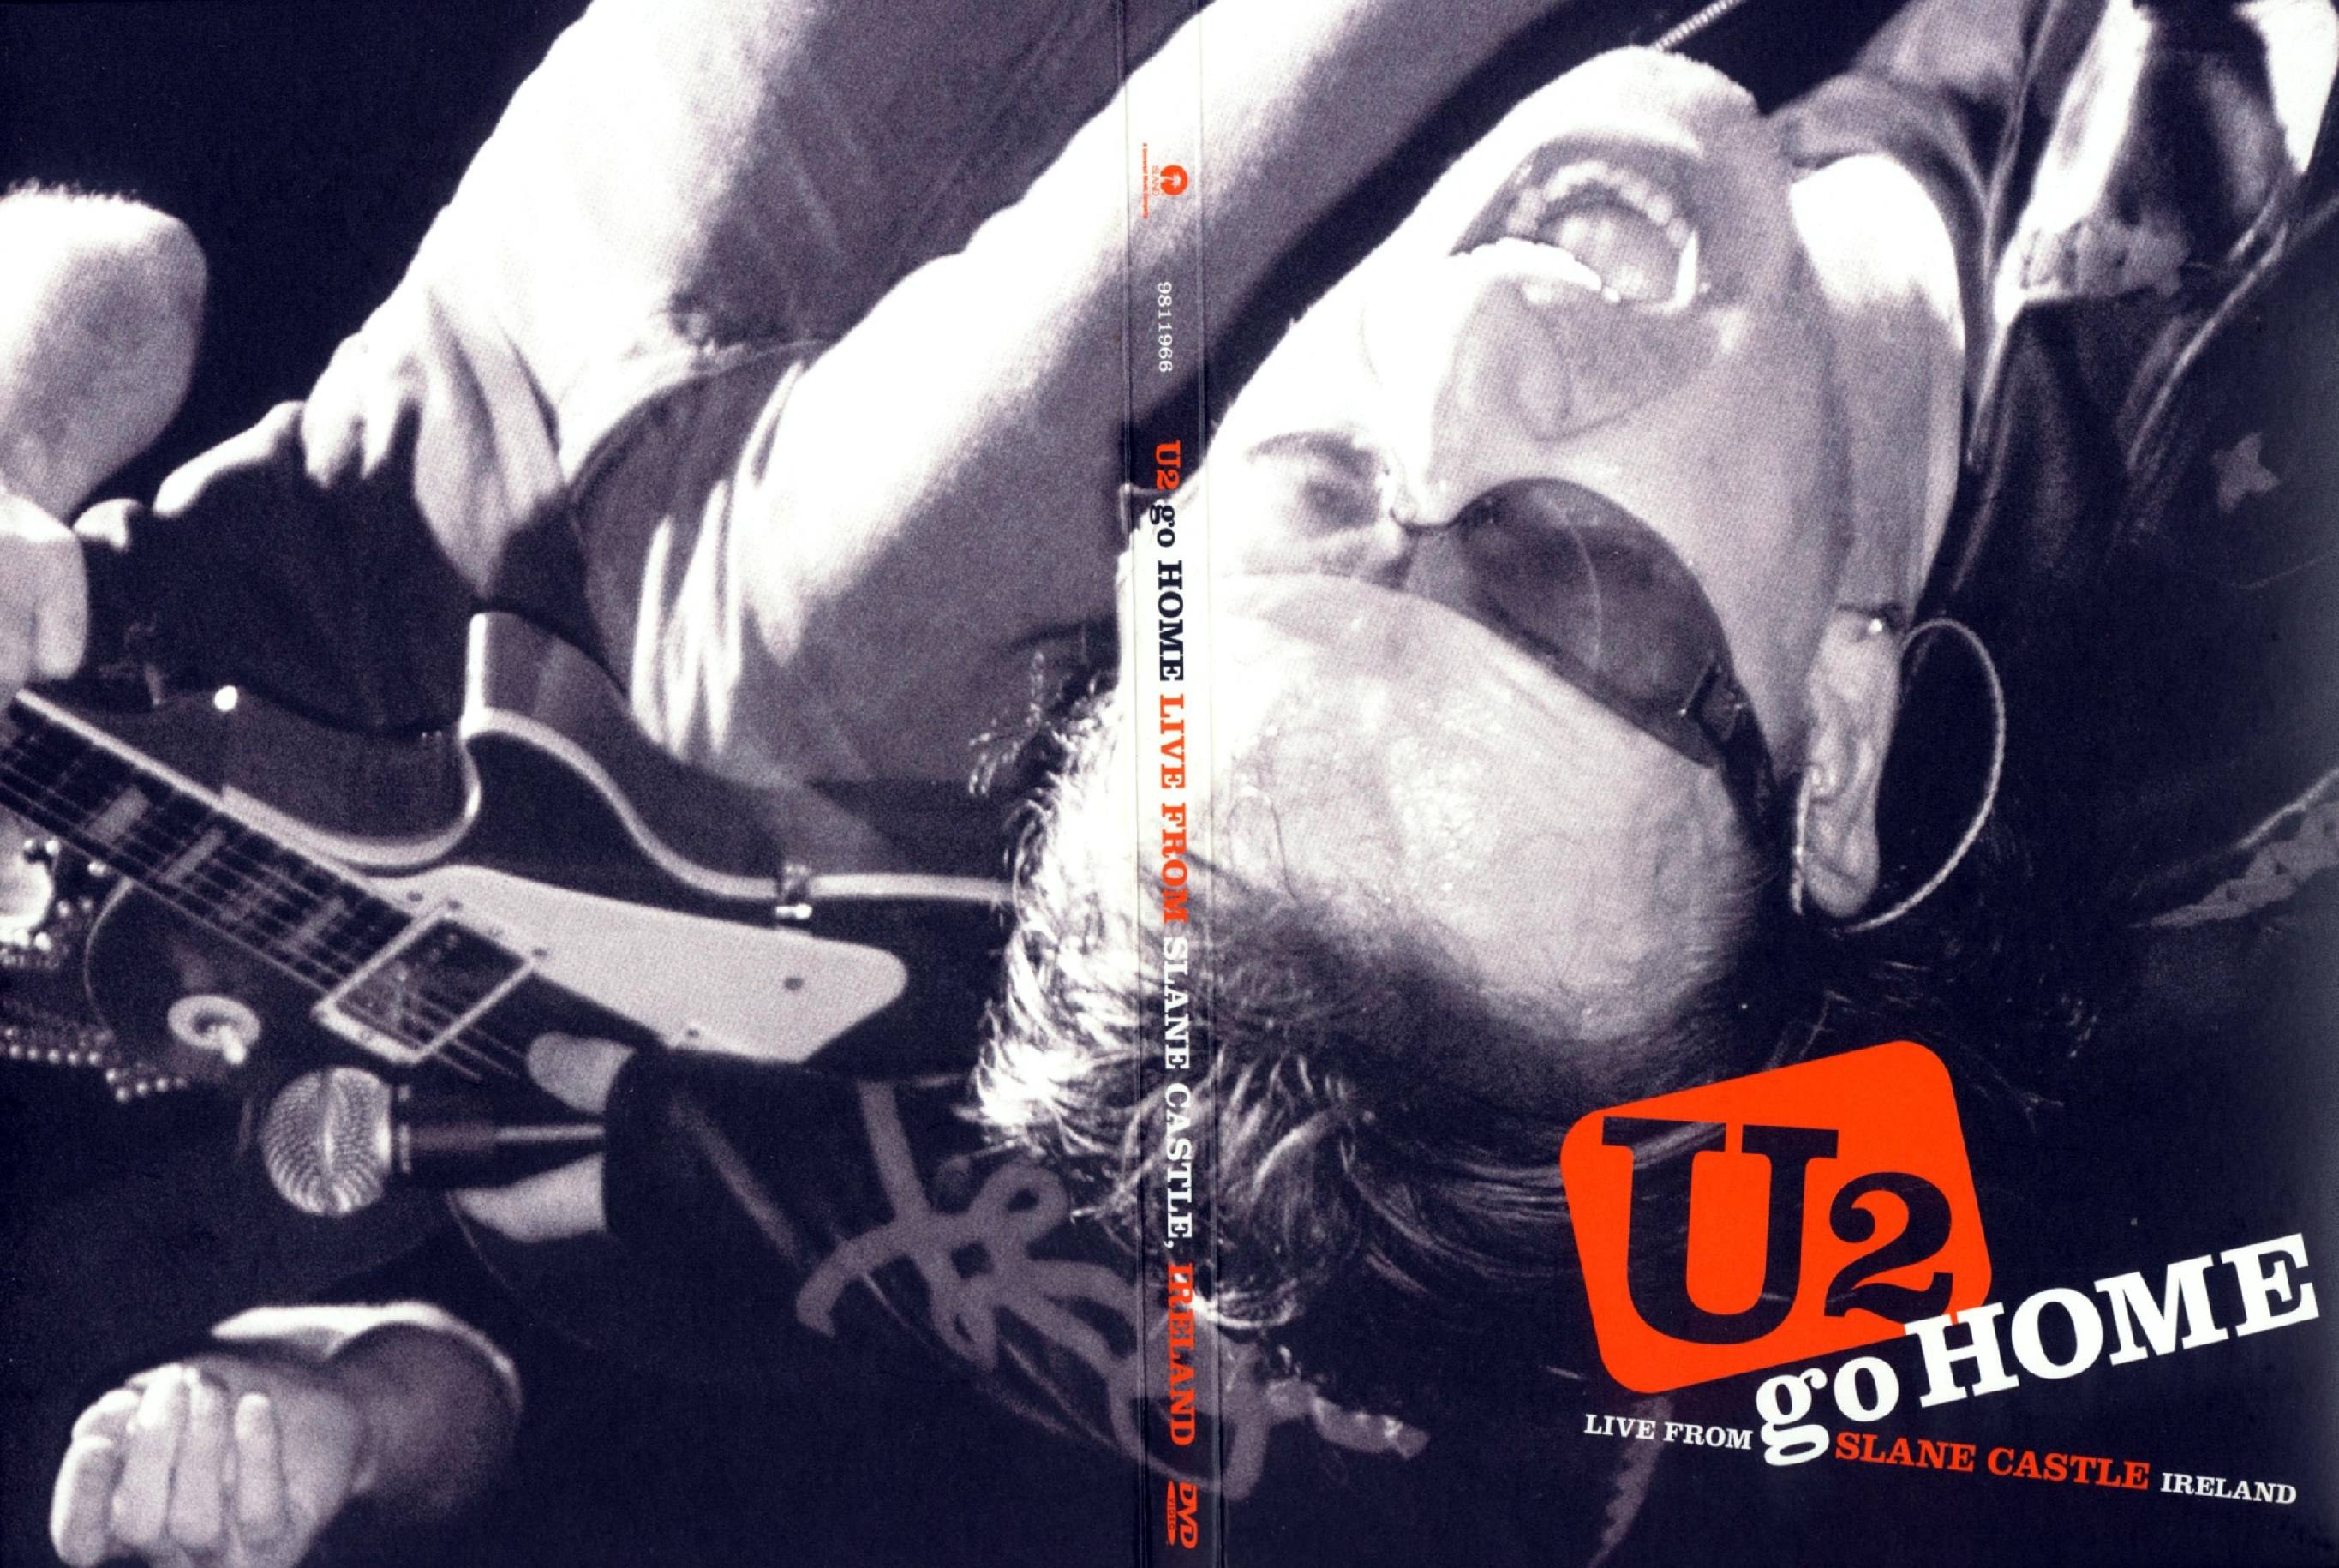 U2 go home livre from slane castle